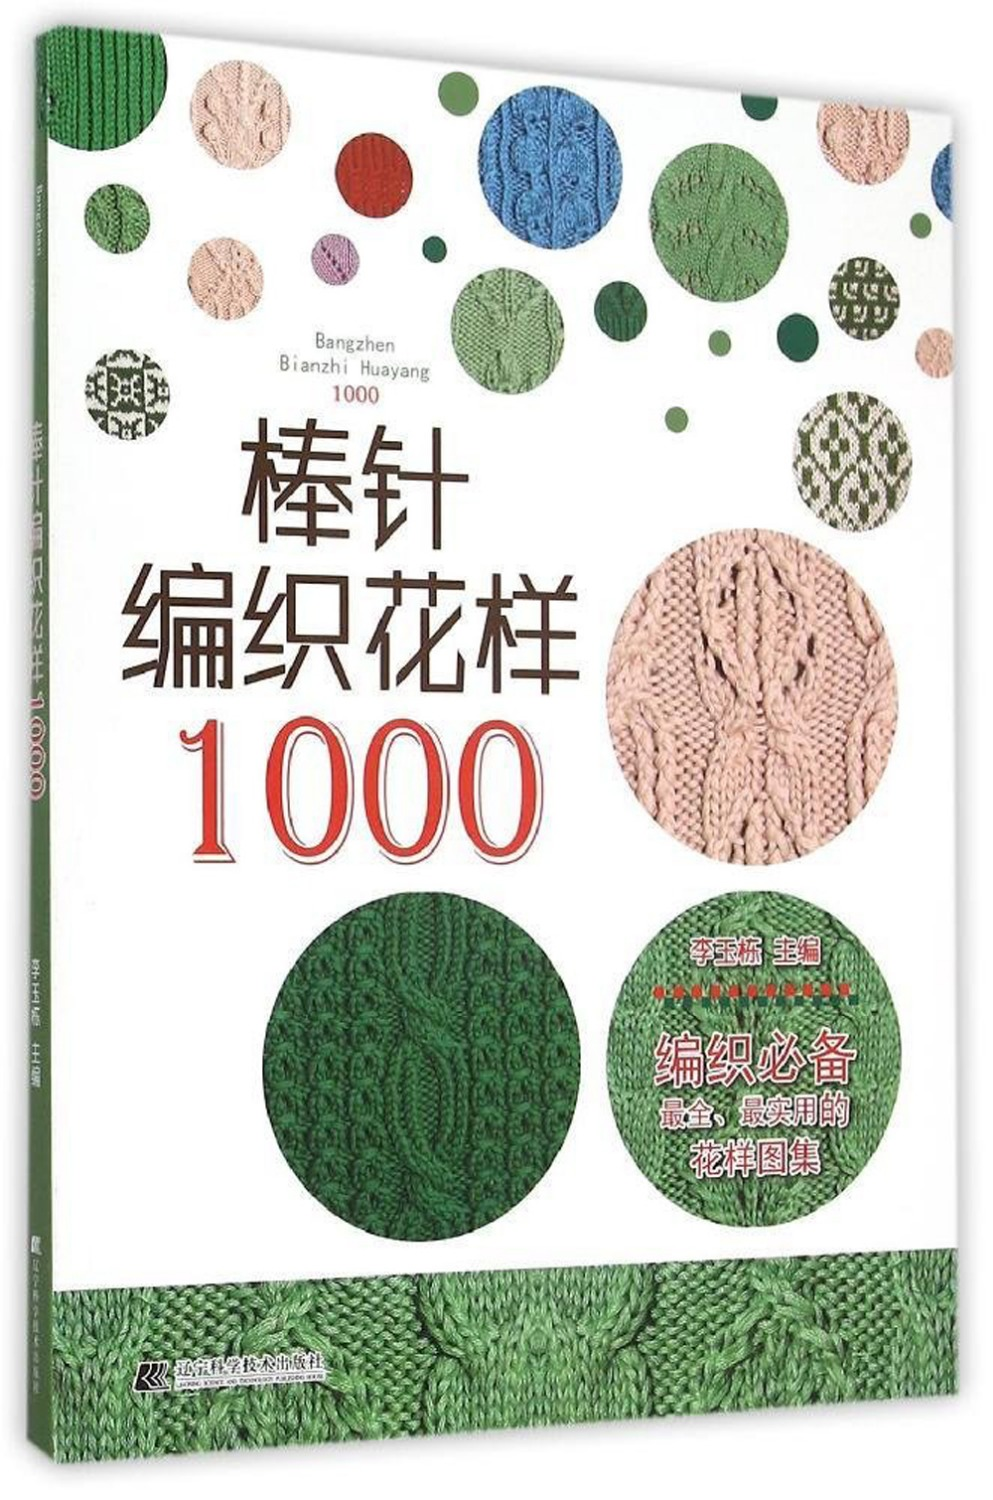 Chinese Knitting Pattern Sweater Book With 1000 Different Pattern Novice Zero Basics Learning Needle Knitting Tutorial Books